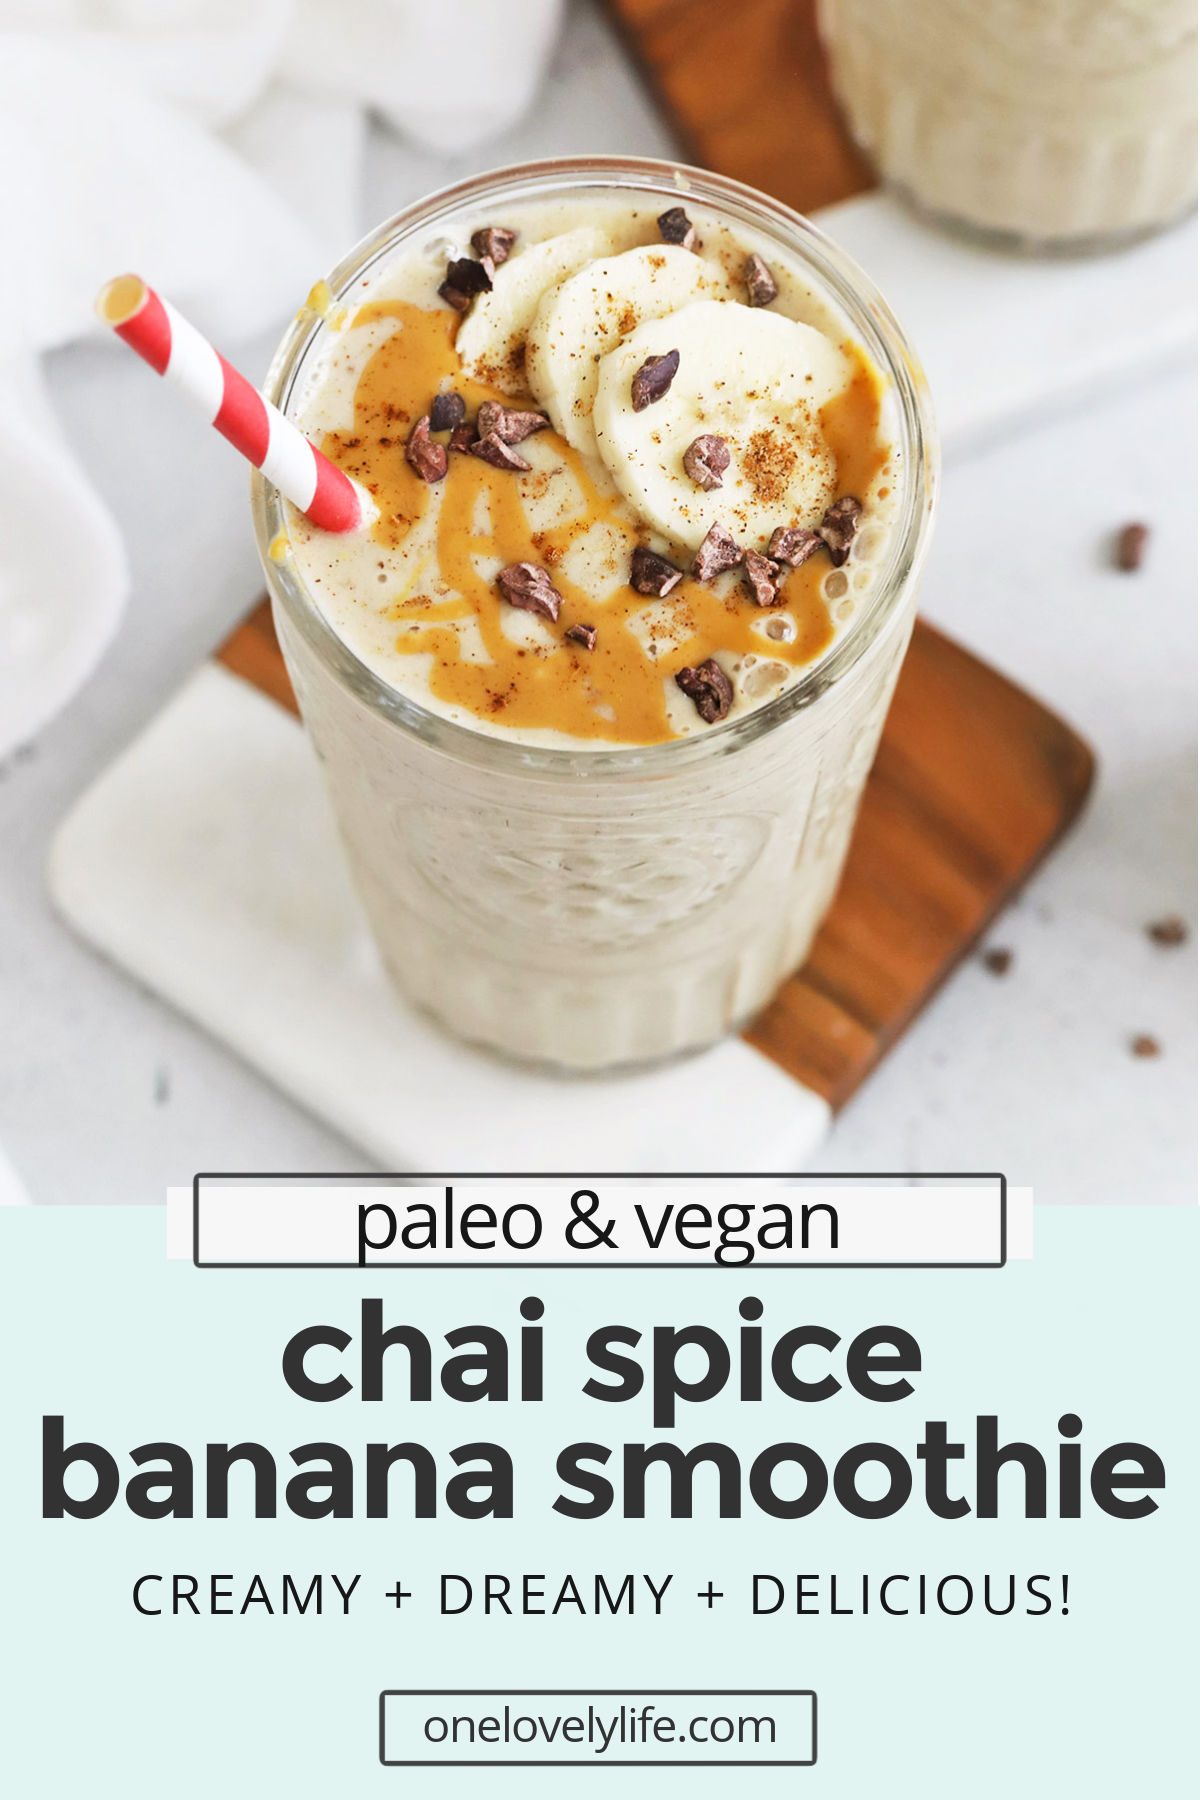 Chai Spiced Banana Smoothies - This chai banana smoothie is such a yummy change of pace! It's perfect all year long. (Paleo, Vegan) // Chai Spice Banana Smoothie // Banana Smoothie Recipe // Banana Chai Smoothie // Fall Smoothie // Winter Smoothie // Paleo Smoothie // Vegan Smoothie #smoothie #chai #banana #chaispice